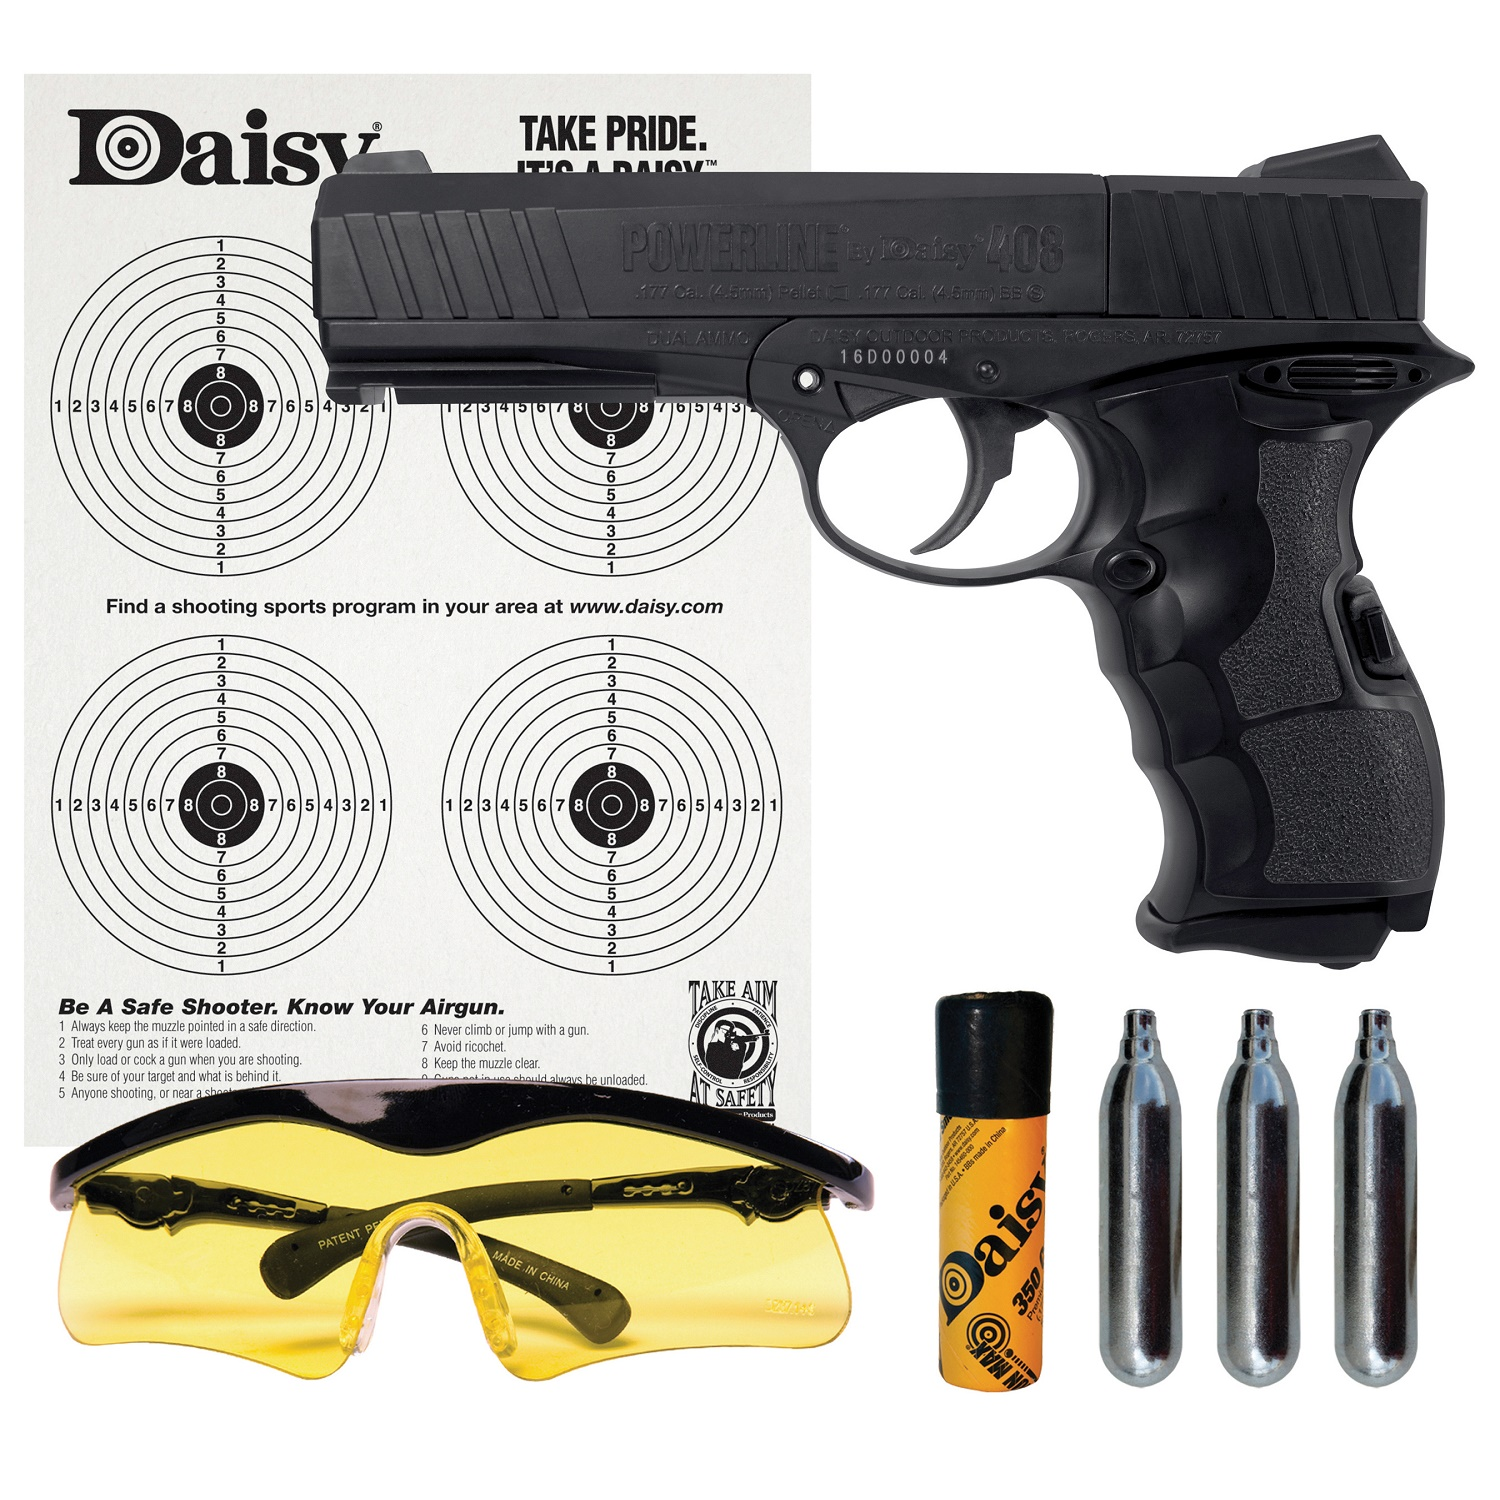 Daisy PowerLine 408 8-shot BB Pellet CO2 Semi-Auto by Daisy